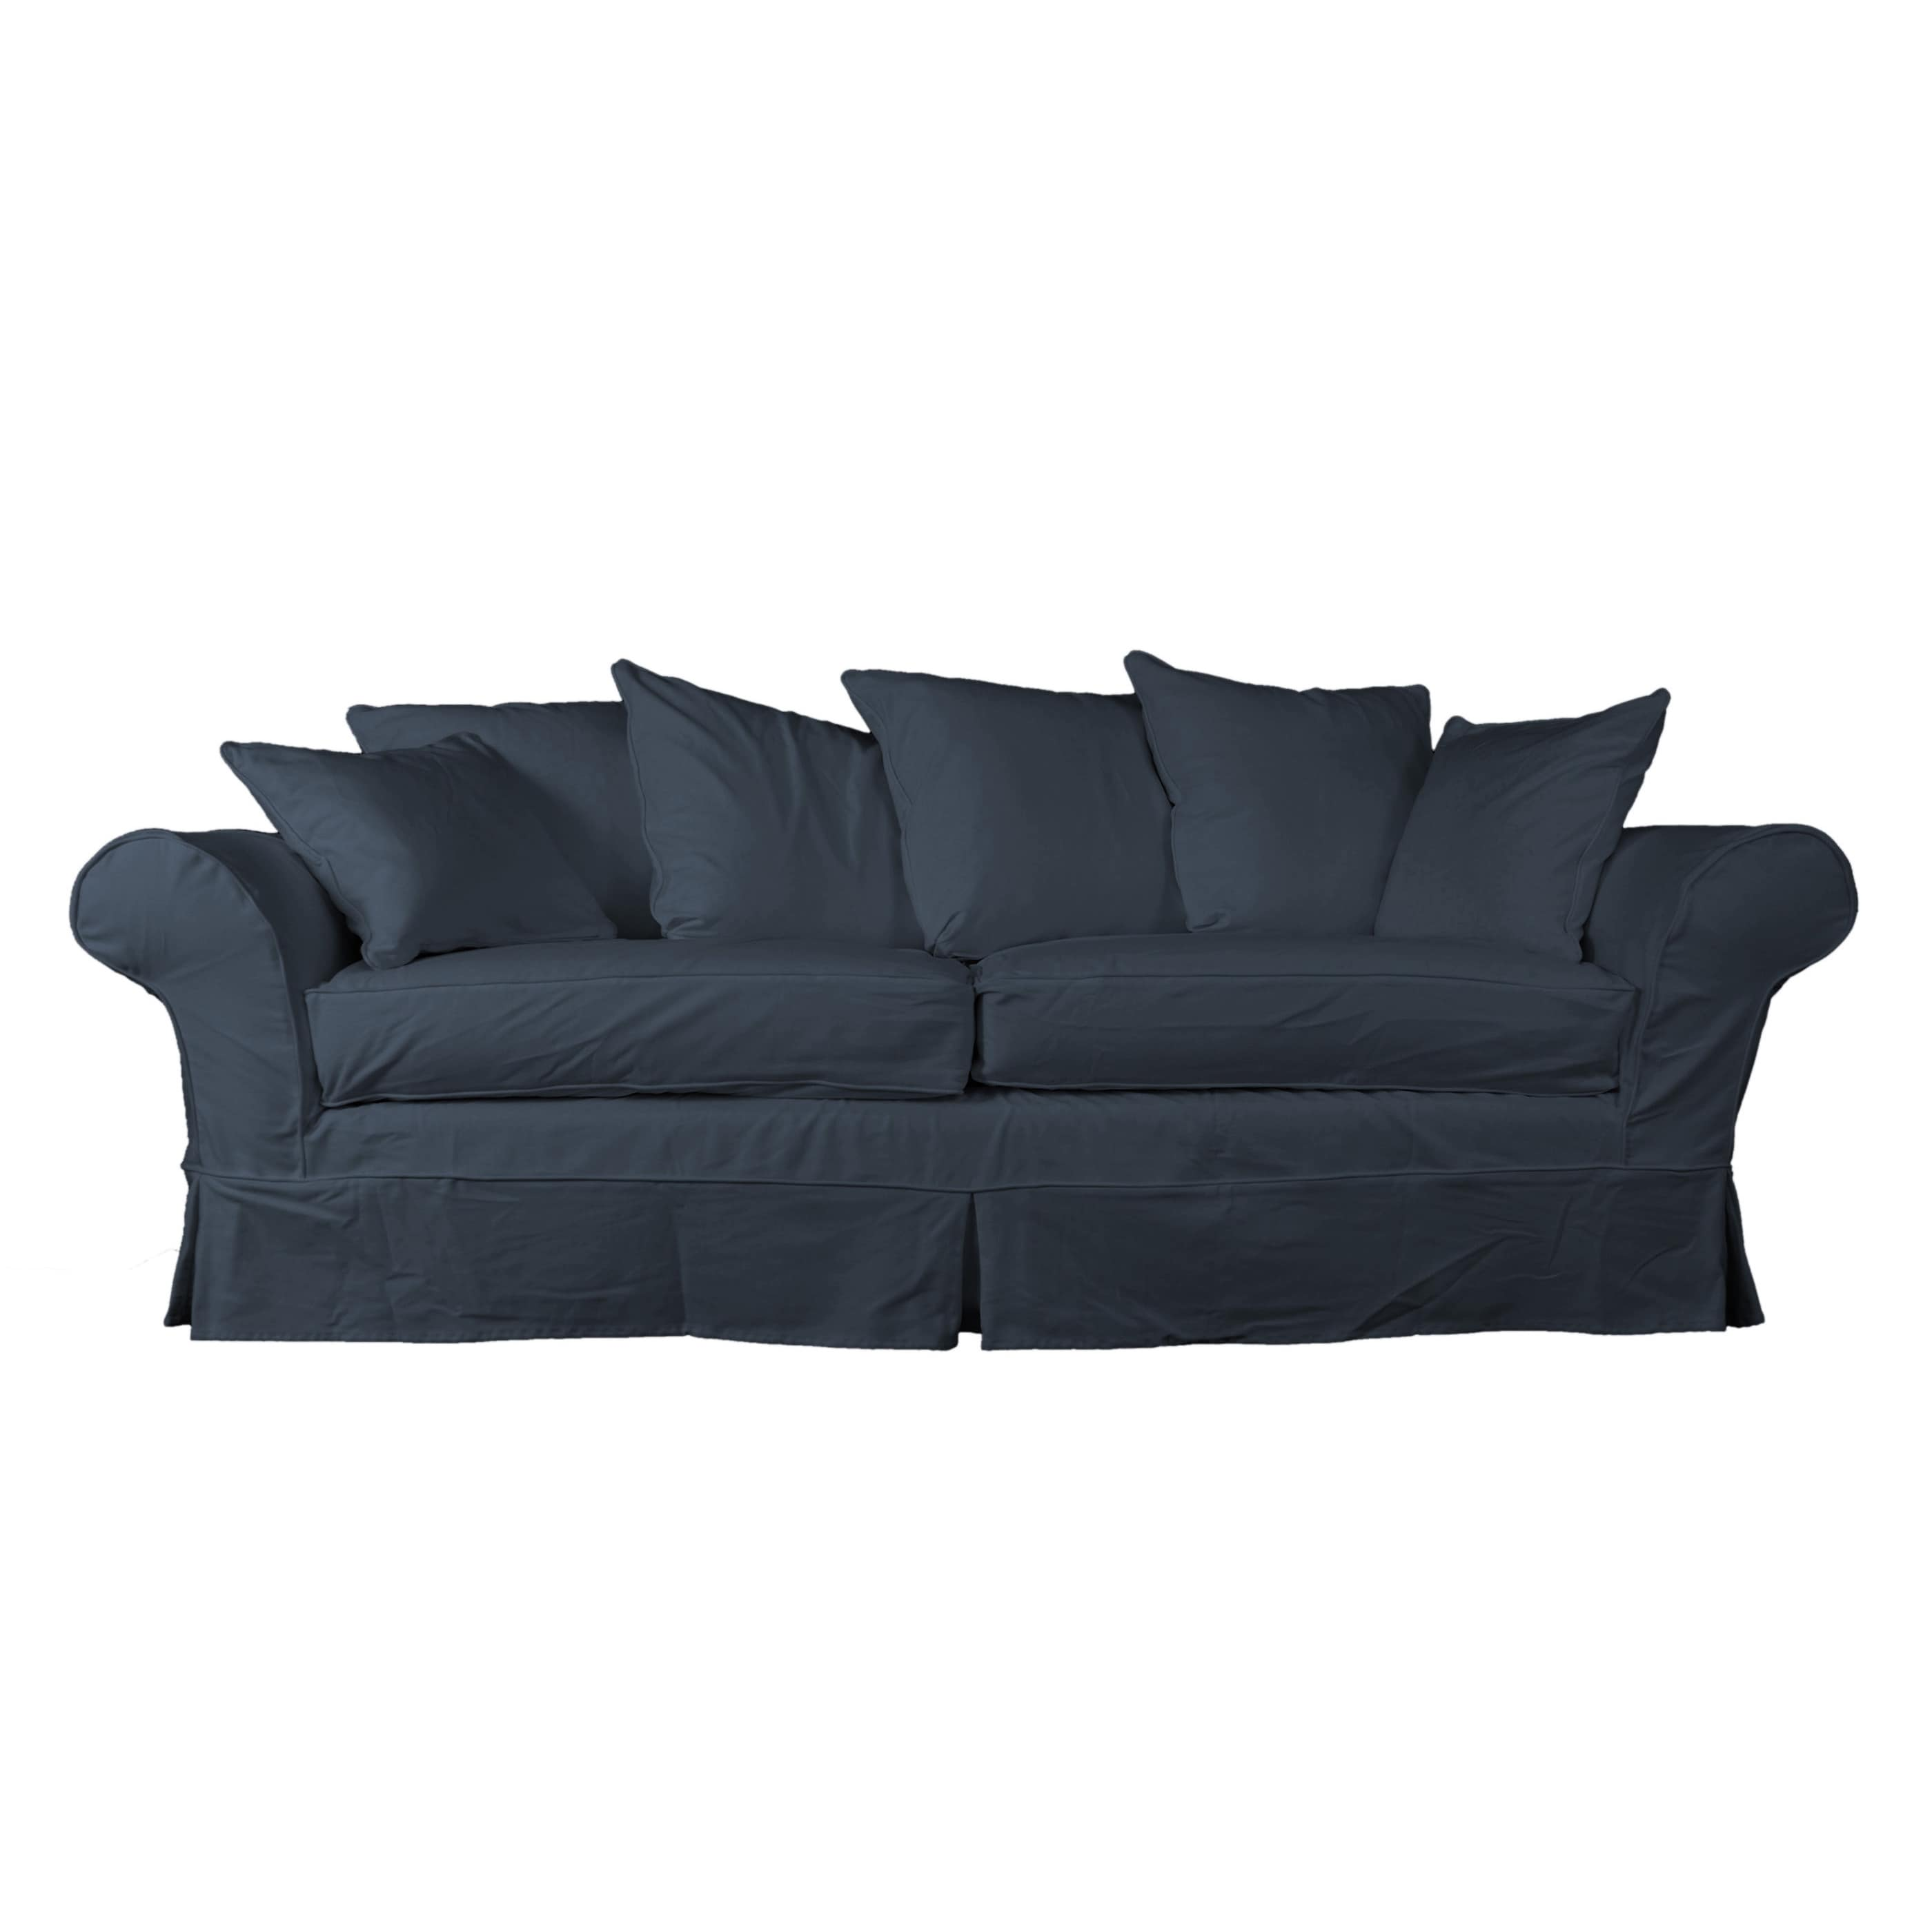 Huntington Industries Eco Friendly Elizabeth Farmhouse Slipcovered Sofa    Walmart.com